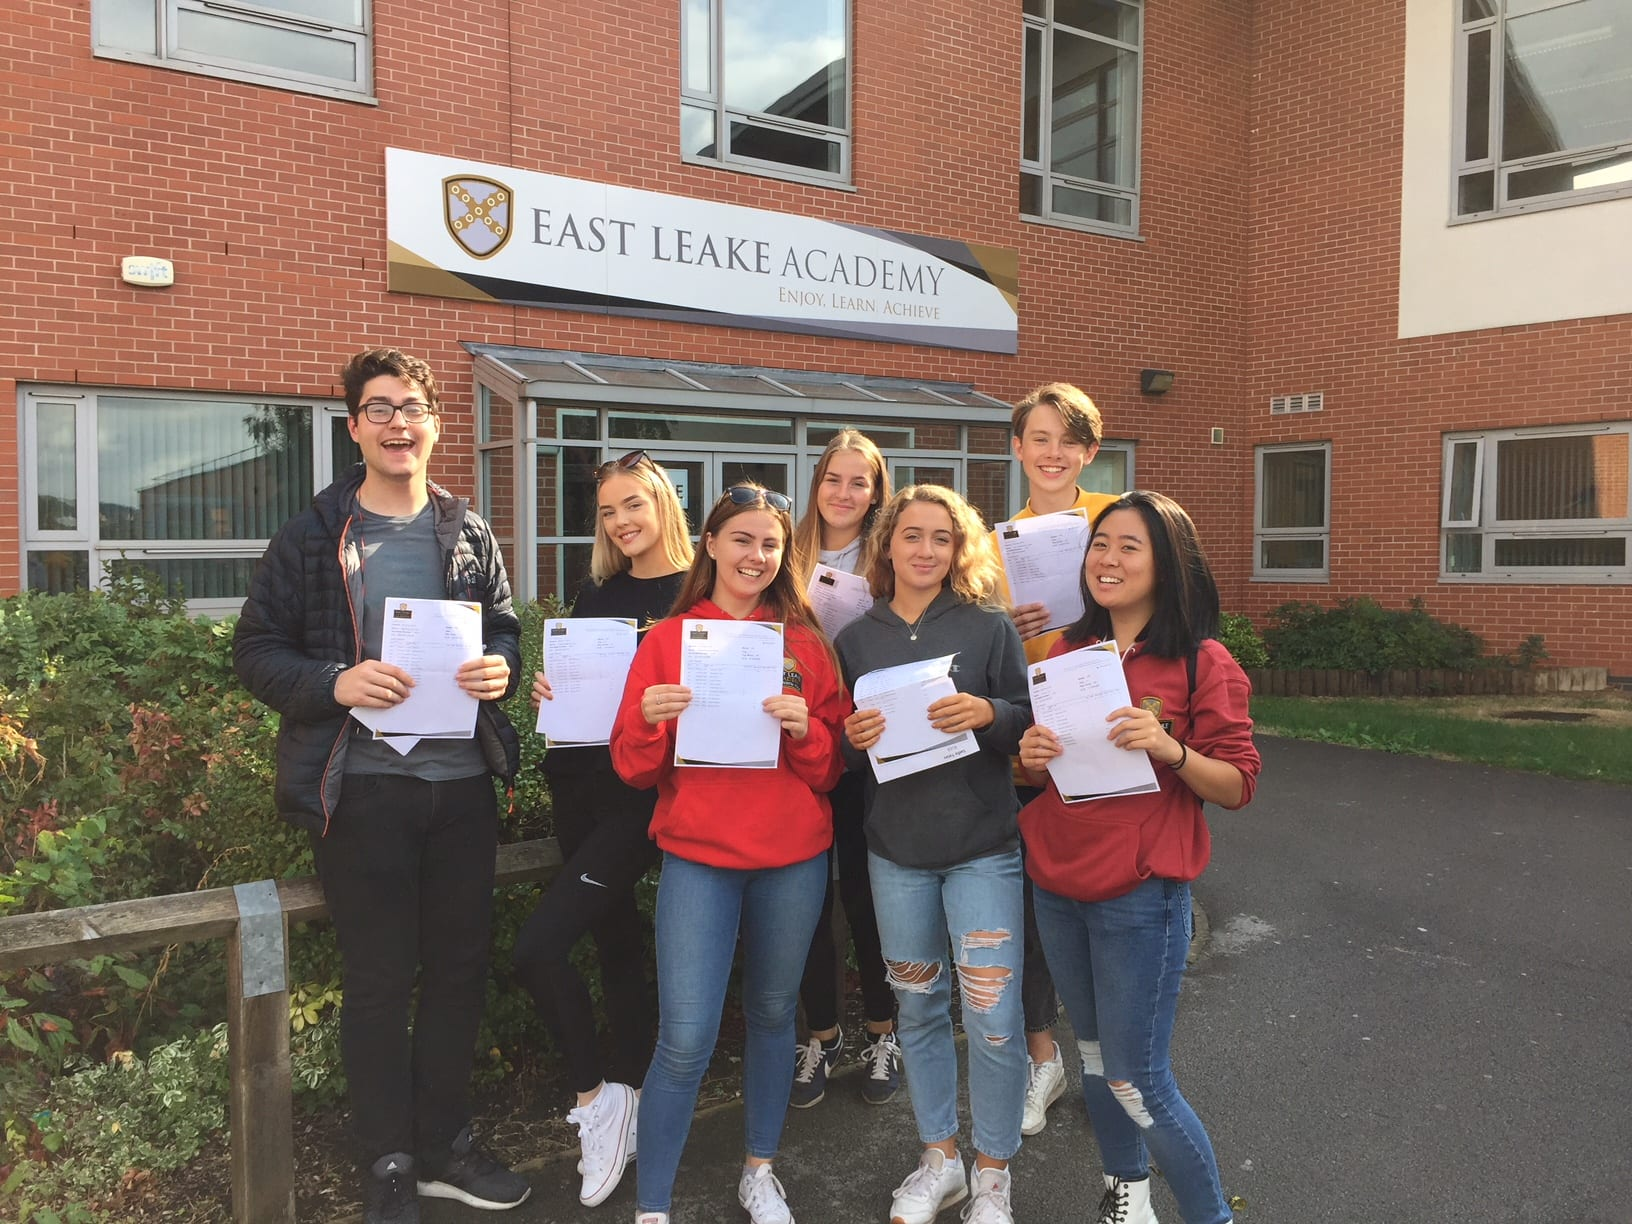 East Leake Academy students celebrate GCSE results